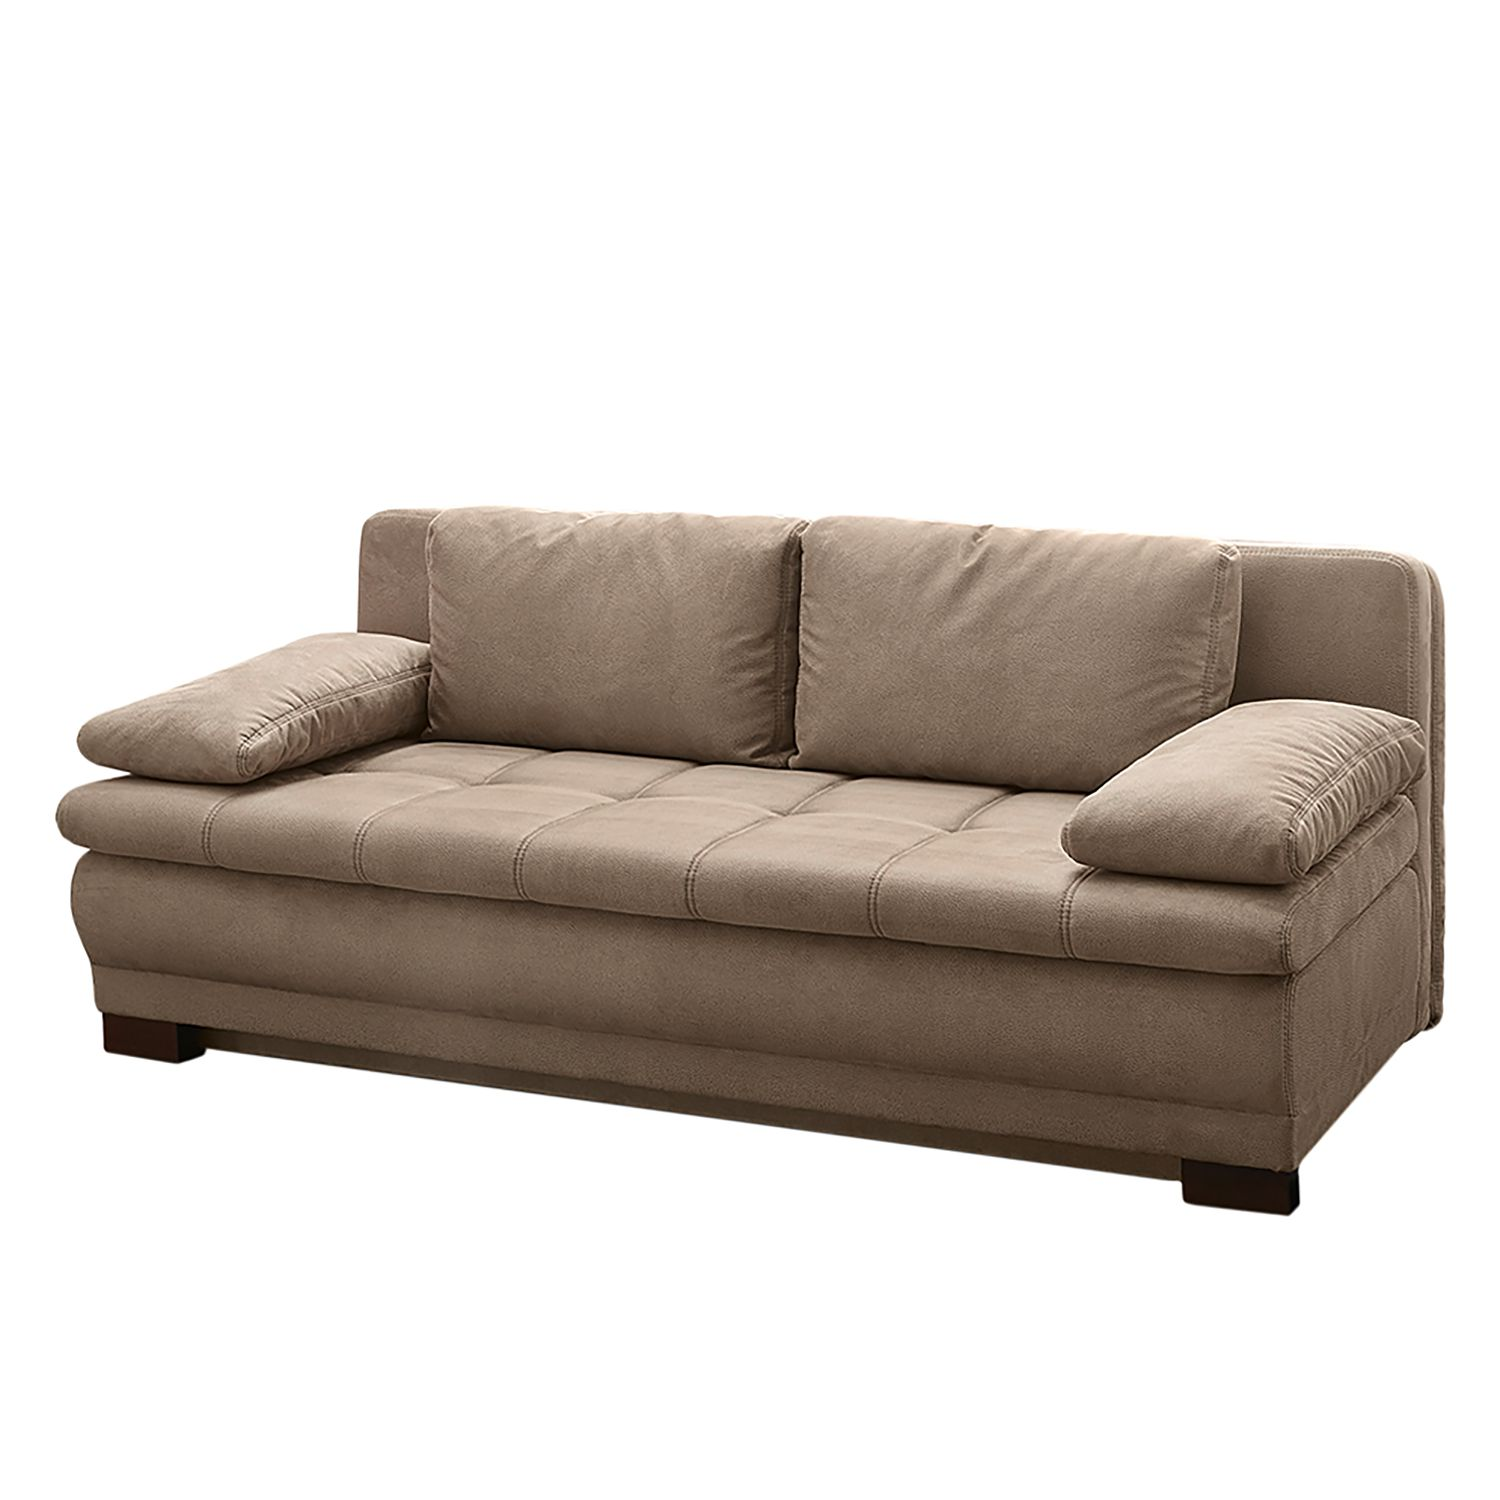 Schlafsofa Belletby